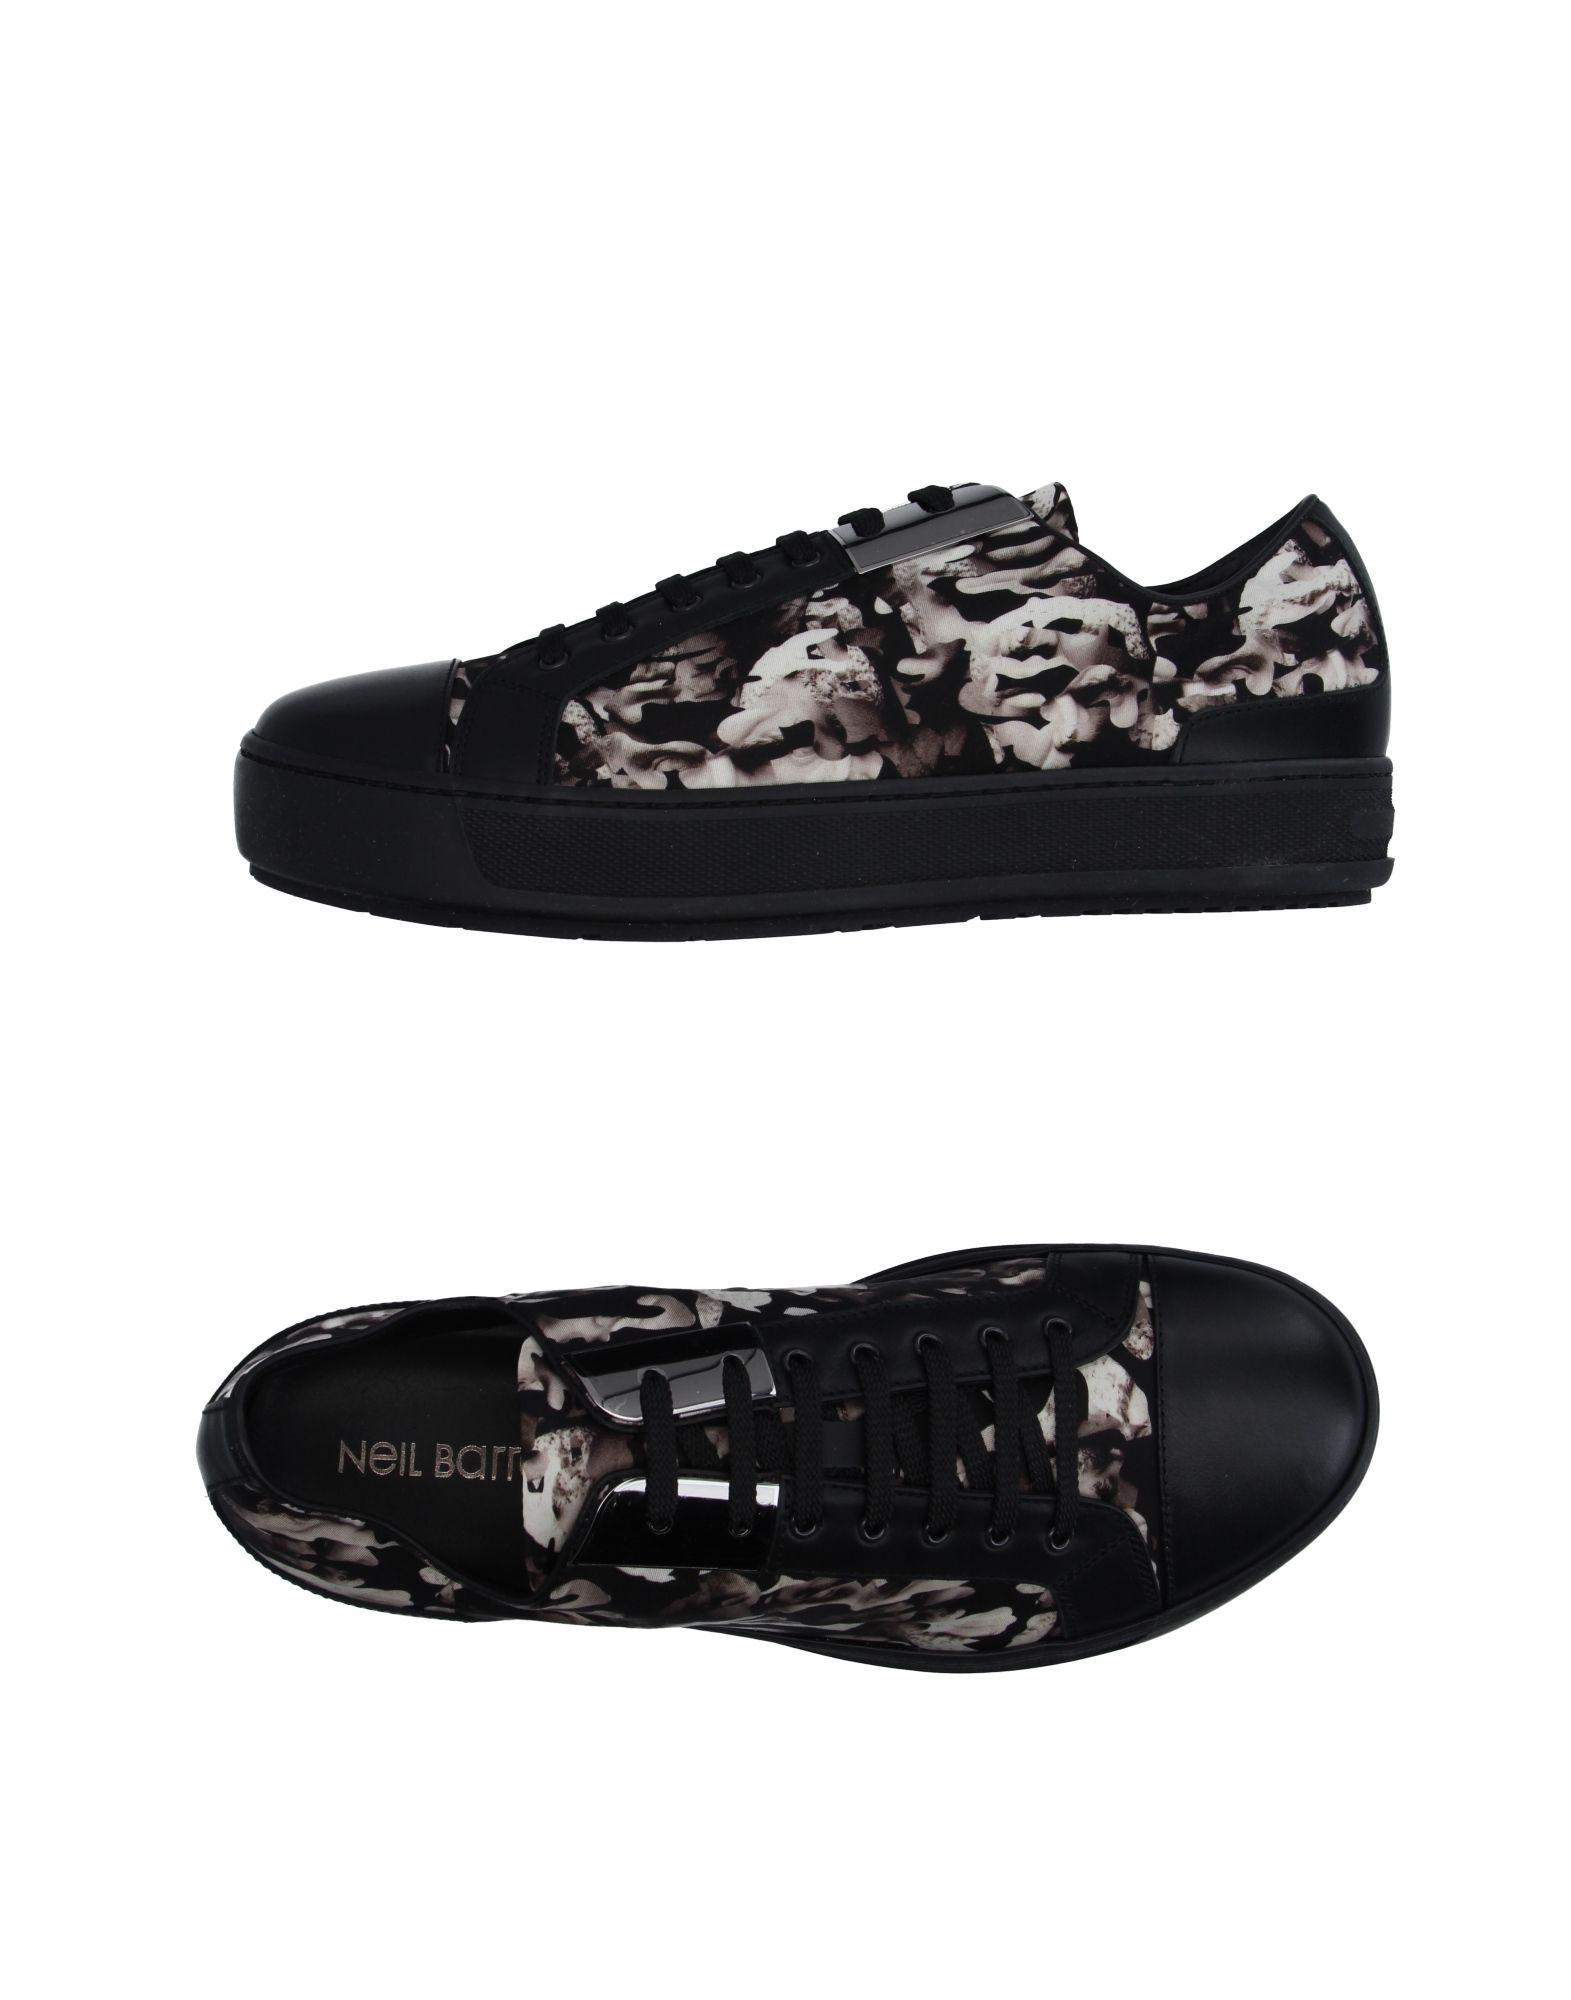 FOOTWEAR - Low-tops & sneakers Neil Barrett Manchester Great Sale Online Cheap Price Fake Cheap Sale Newest Cheap Sale Official S9lOqhoqMu